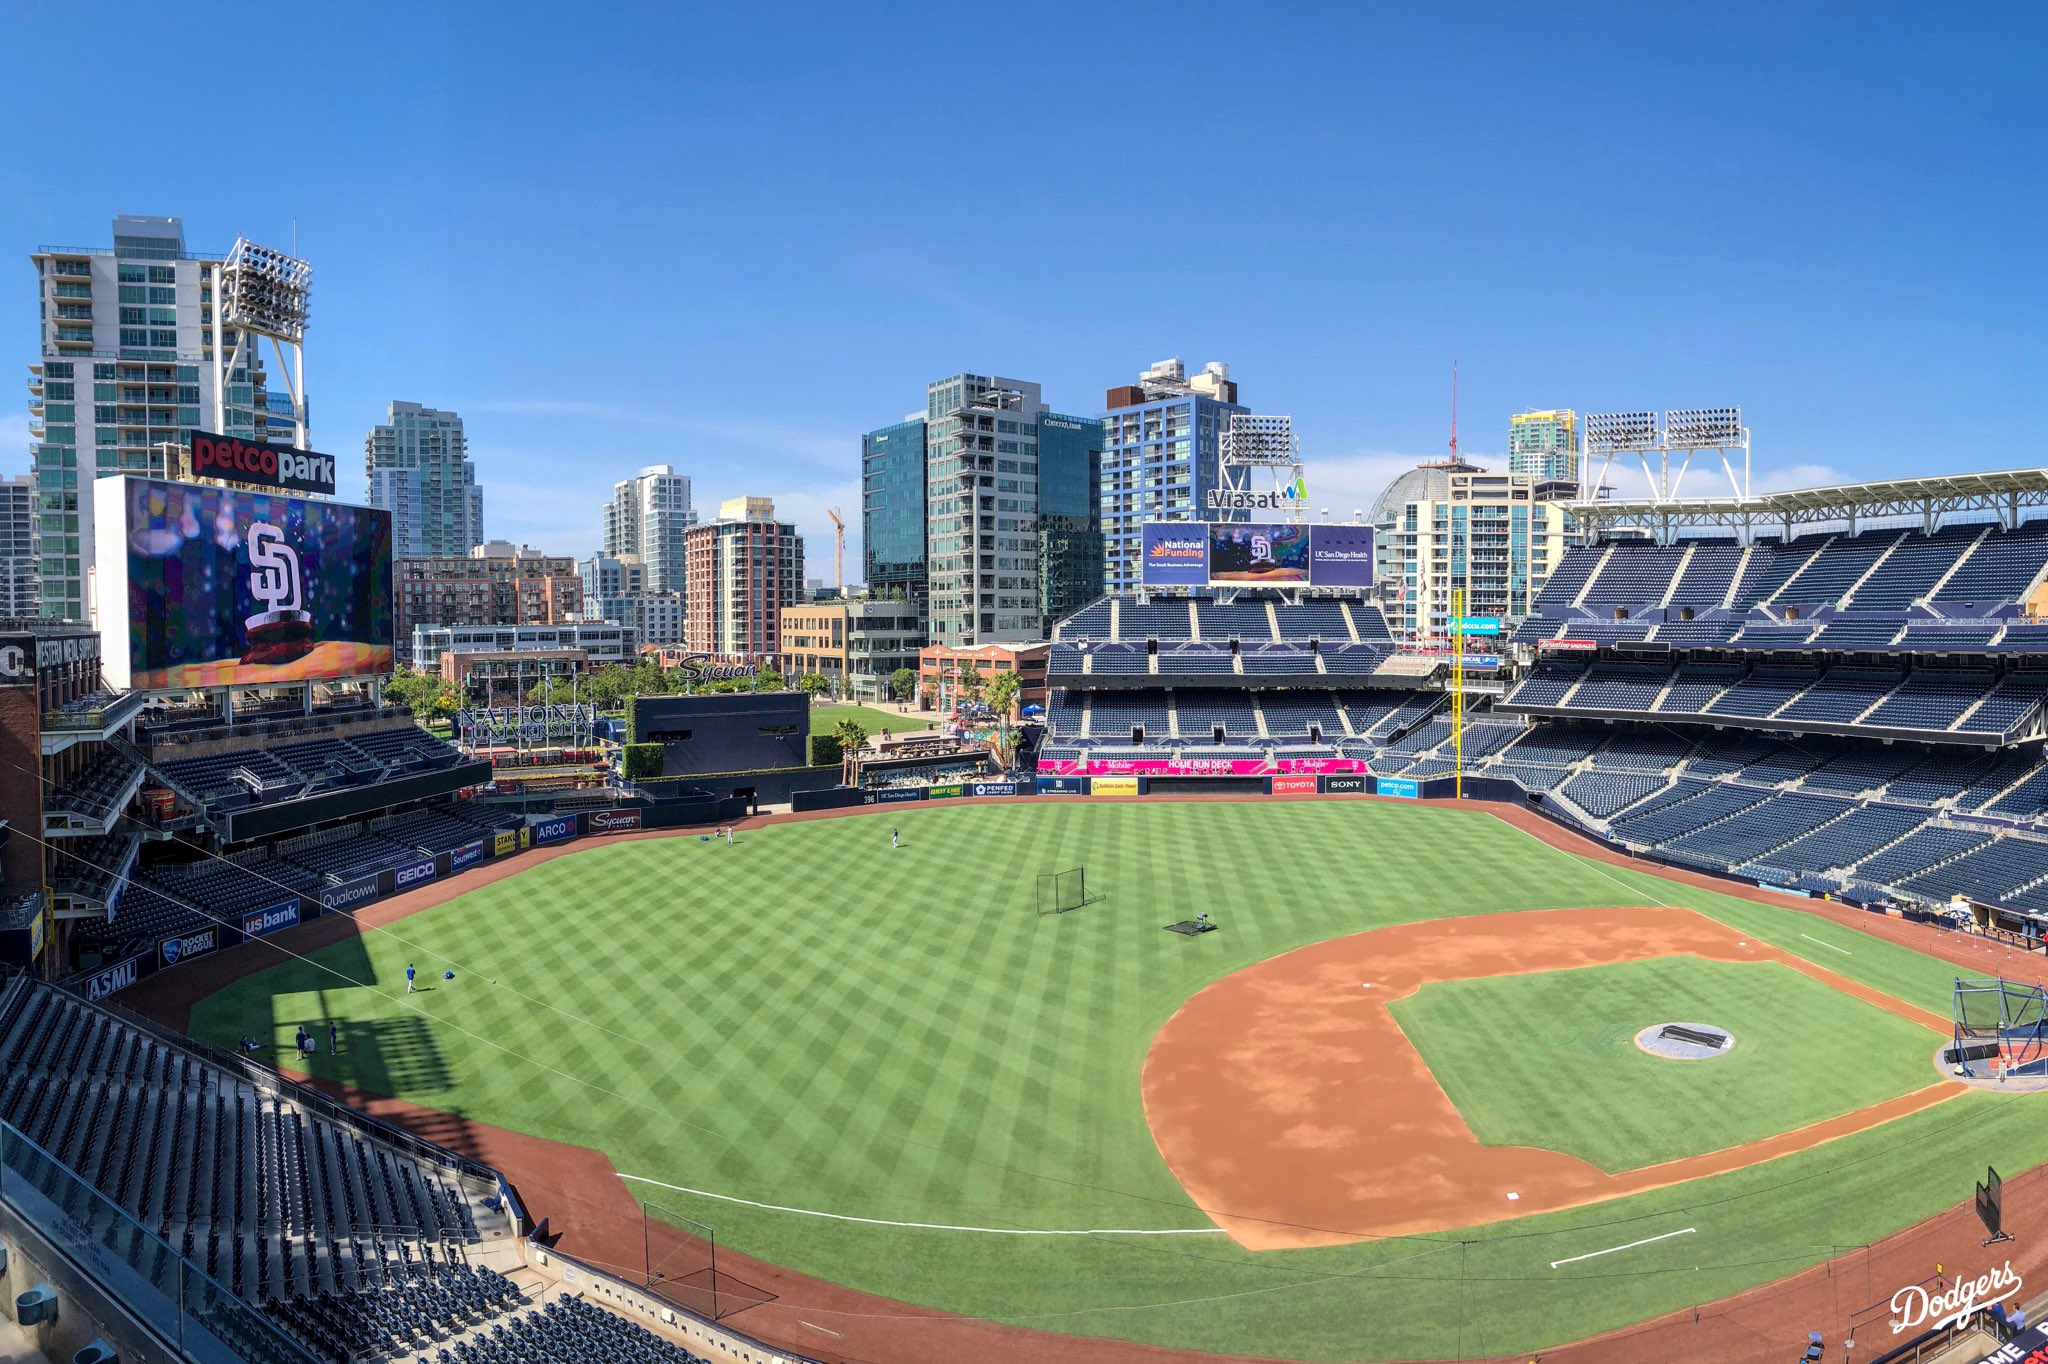 Last day in San Diego, then back home! #Dodgers https://t.co/ETci4ulimM